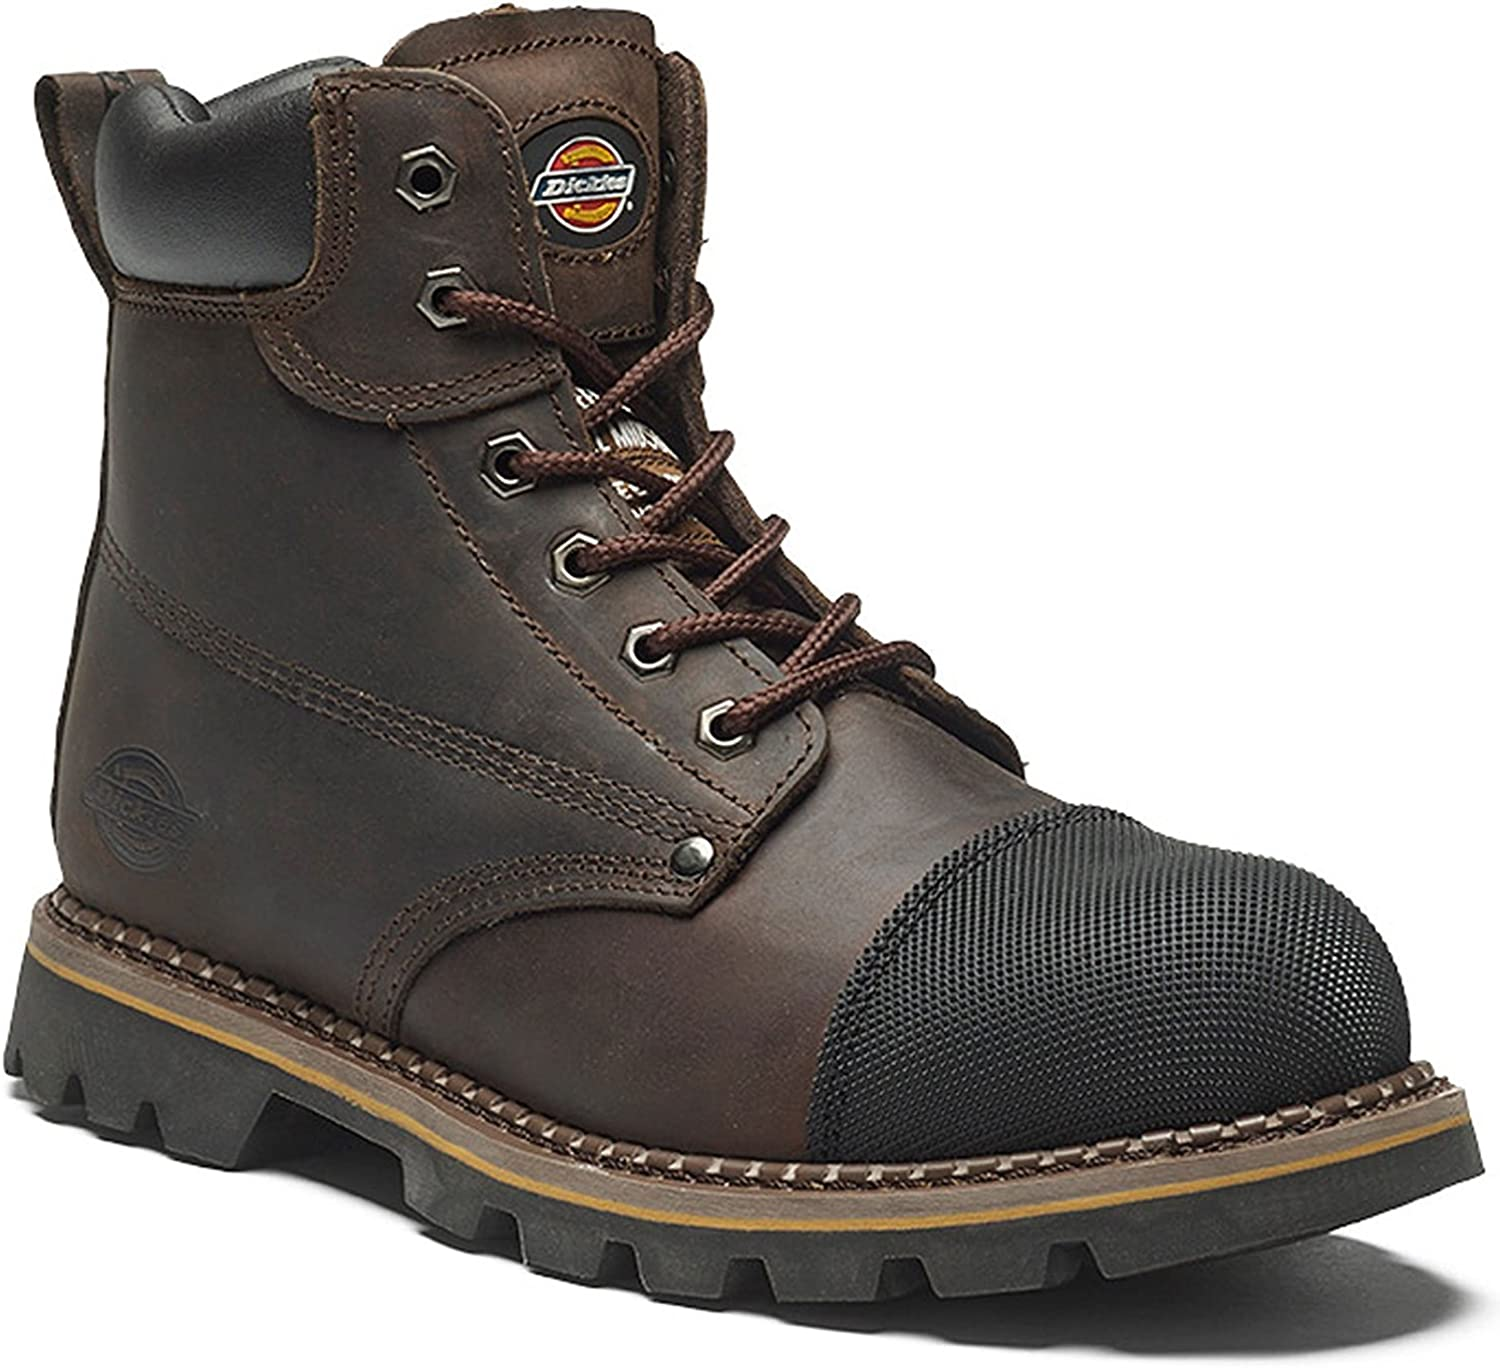 Dickies Crawford Safety Boot SB Brown BR 5 +, FD9210